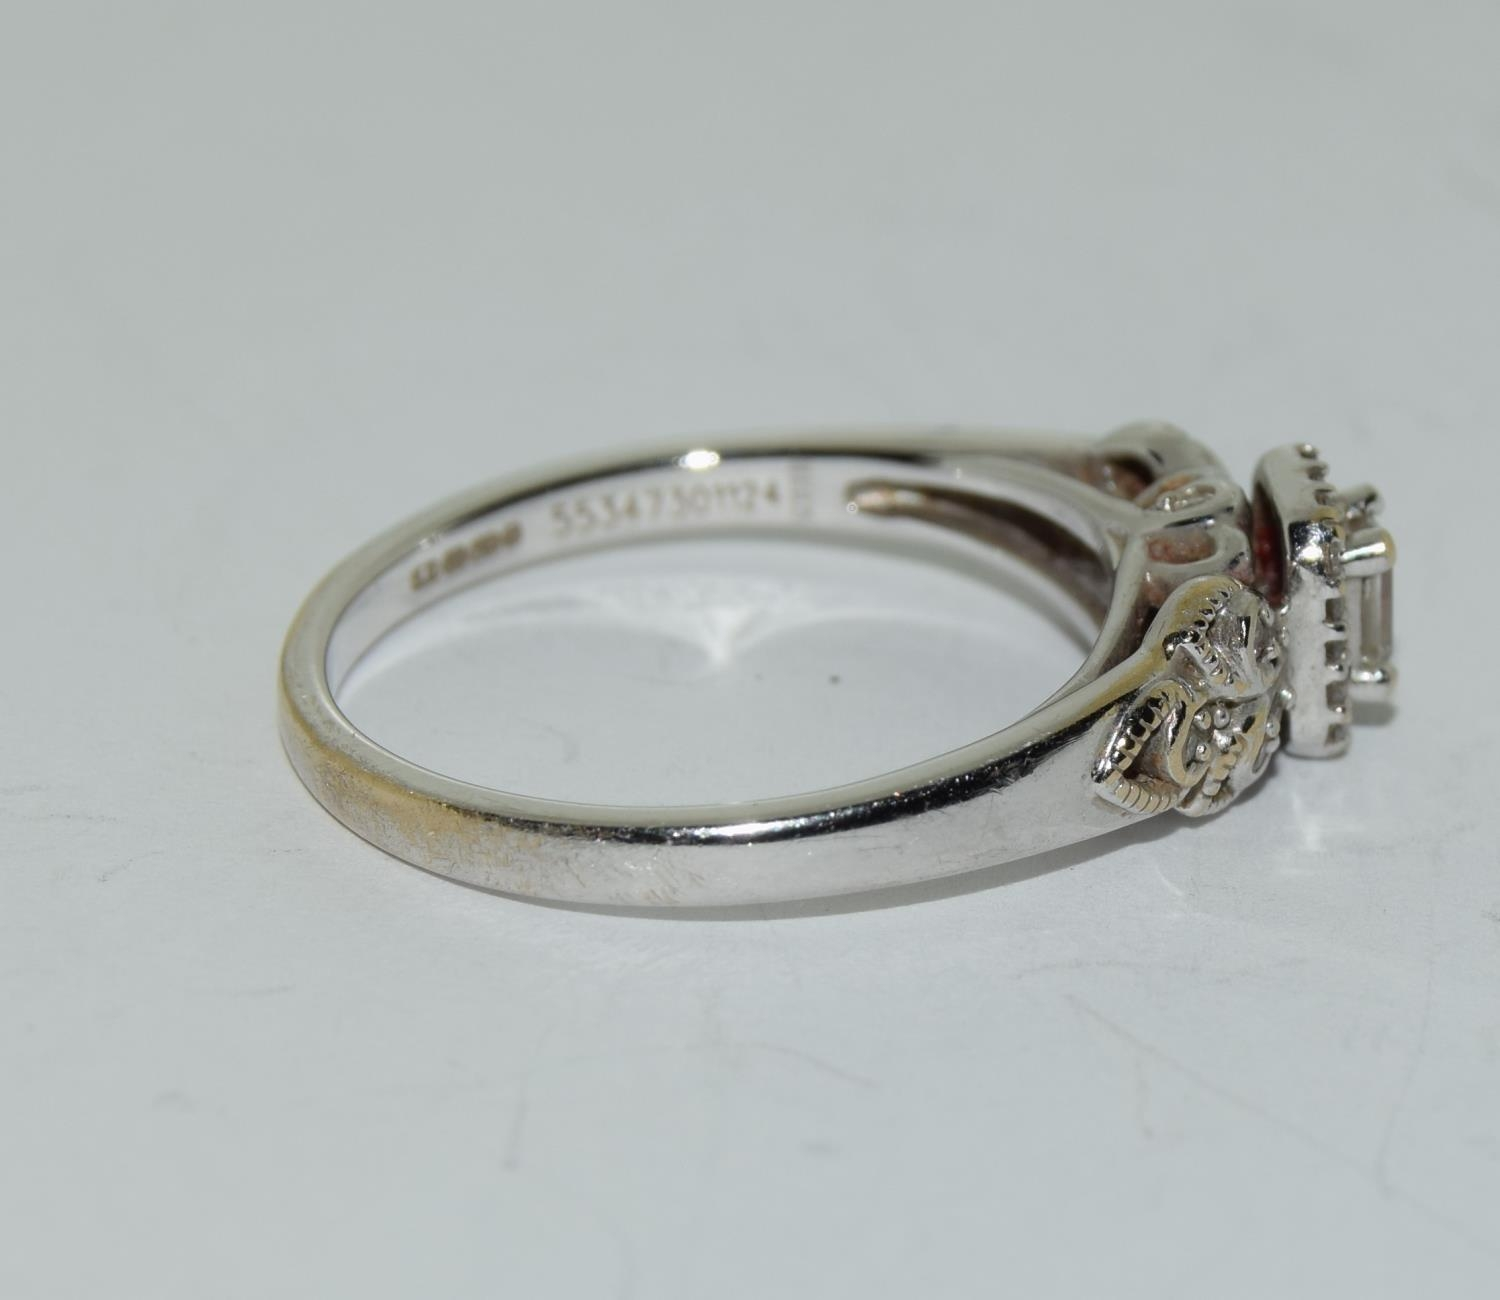 18ct white gold ladies diamond ring with certificat and original boxes from Emmy of London size O - Image 4 of 5